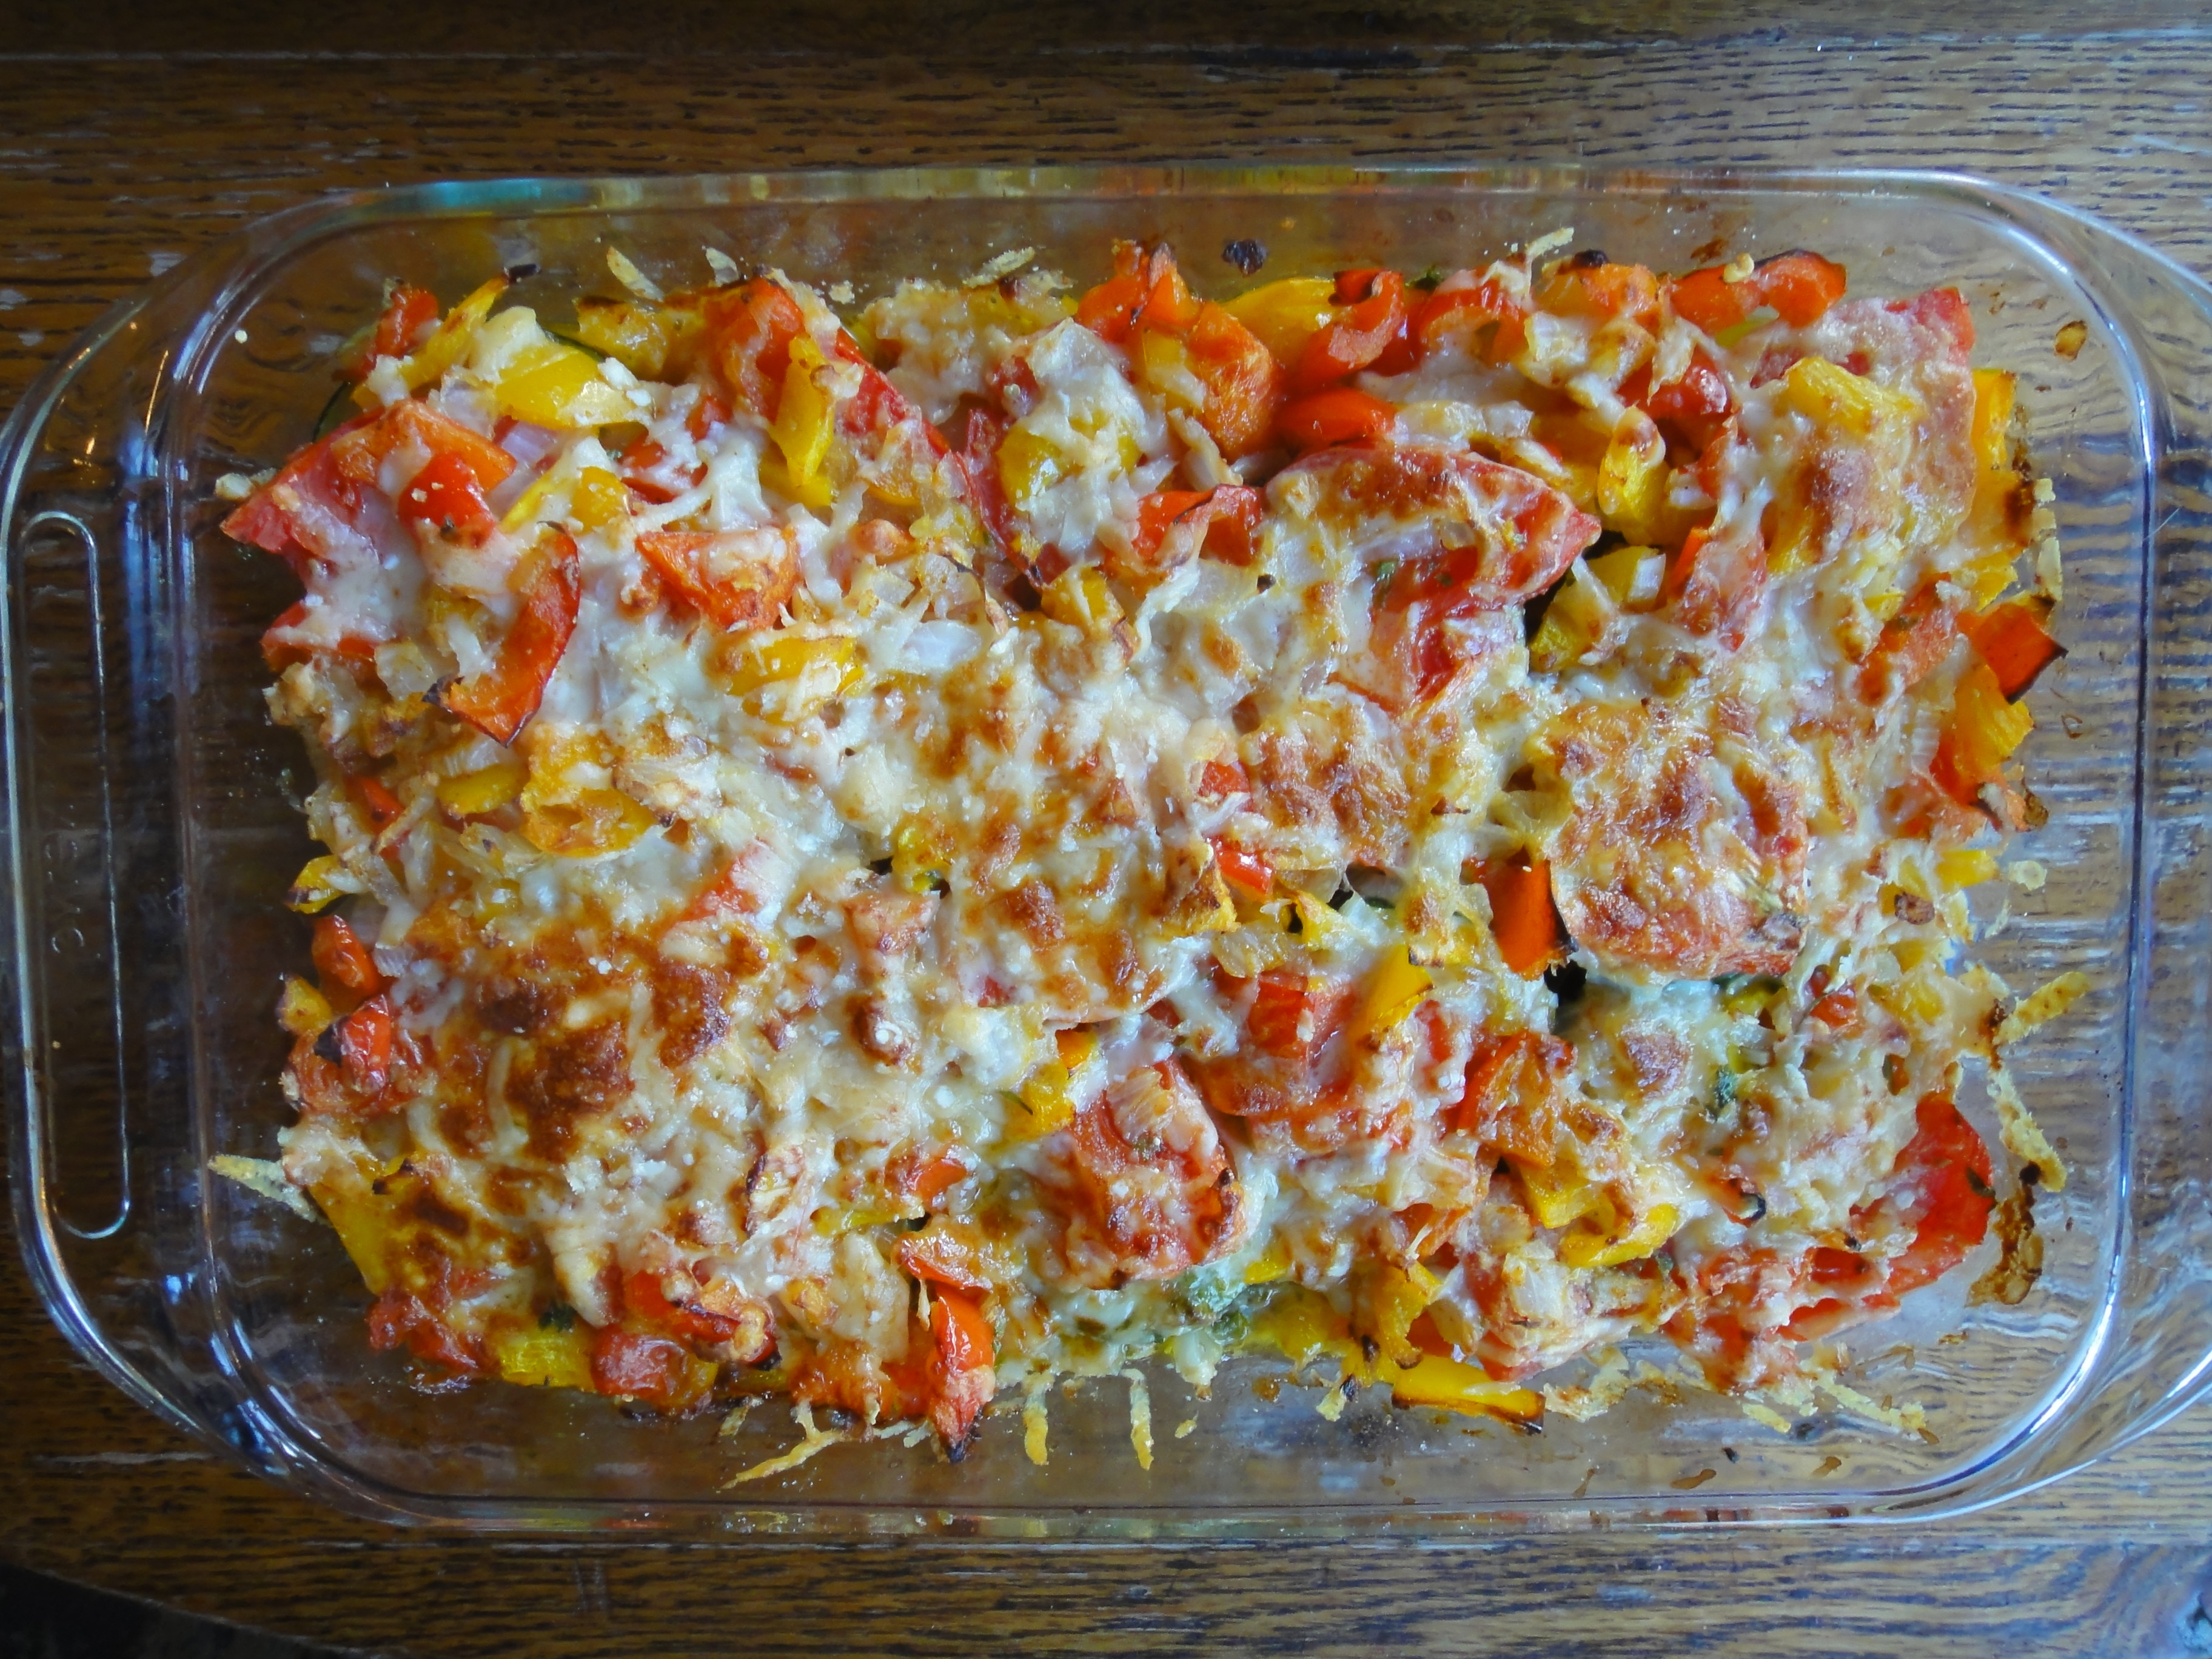 Vegetarian Casserole Recipes Healthy  20 Easy and Healthy Ve arian Casserole Recipes